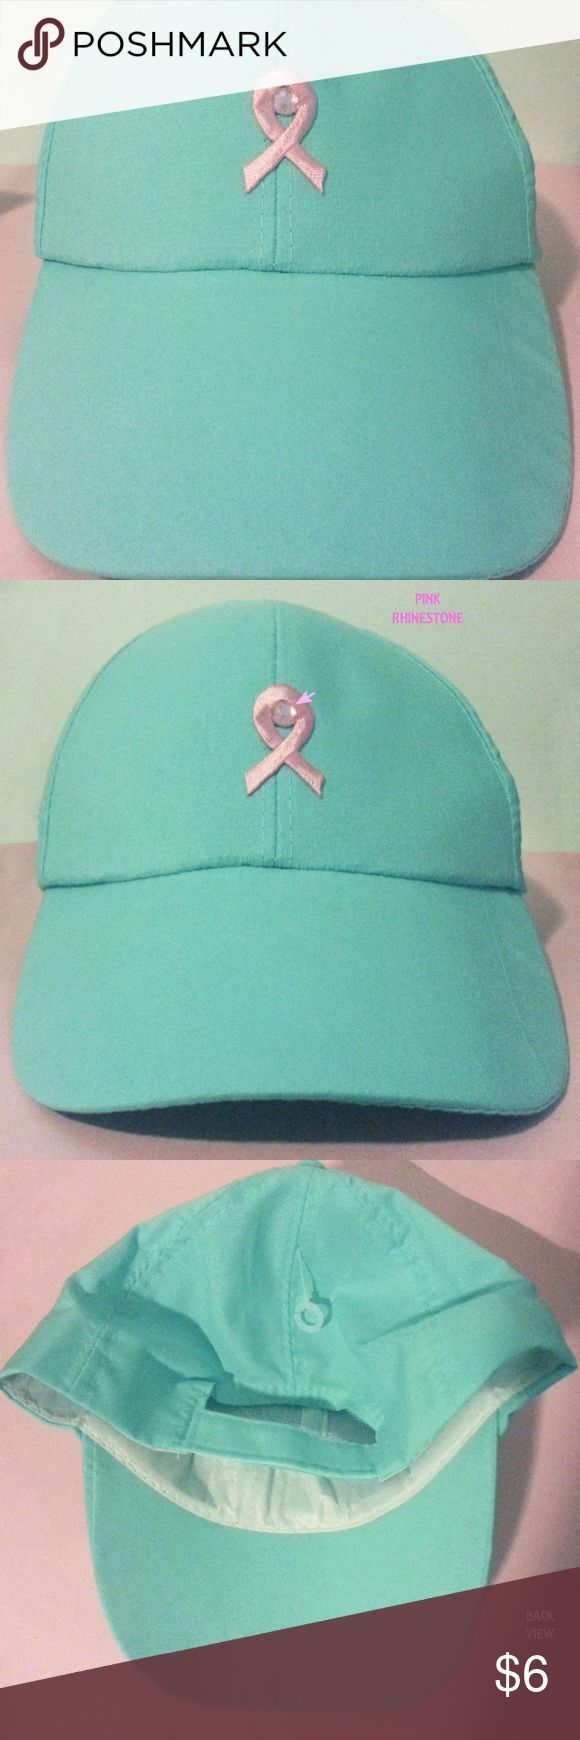 Breast Cancer Awareness Cap Pink Ribbon Hat This has never been worn, new but without tags, in great condition-see pics Baby Aqua Blue Color Adjustable velcro closure strap on back for comfort fit Lightweight material Not to be washed in washer machine Only hand wash if needed after wearing Measurements of ribbon symbol from top to bottom is 33 1/2 mm Pink Rhinestone  Plastic tag fastener still attached One size fits most.... Accessories Hats